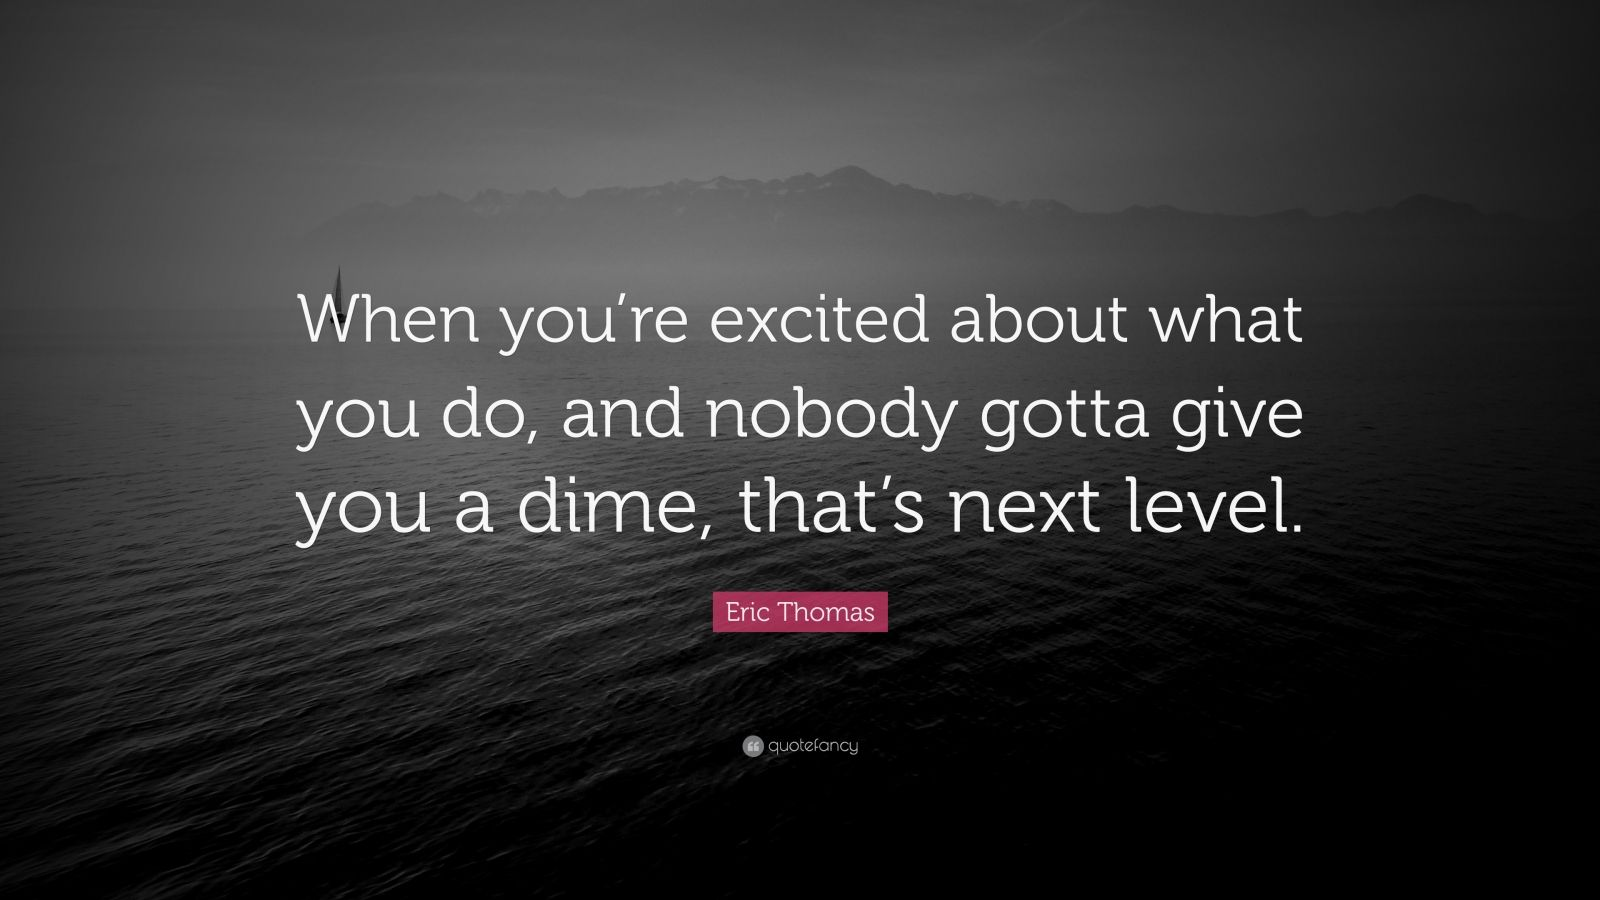 """Eric Thomas Quote: """"When you're excited about what you do, and nobody gotta give you a dime, that's next level."""""""